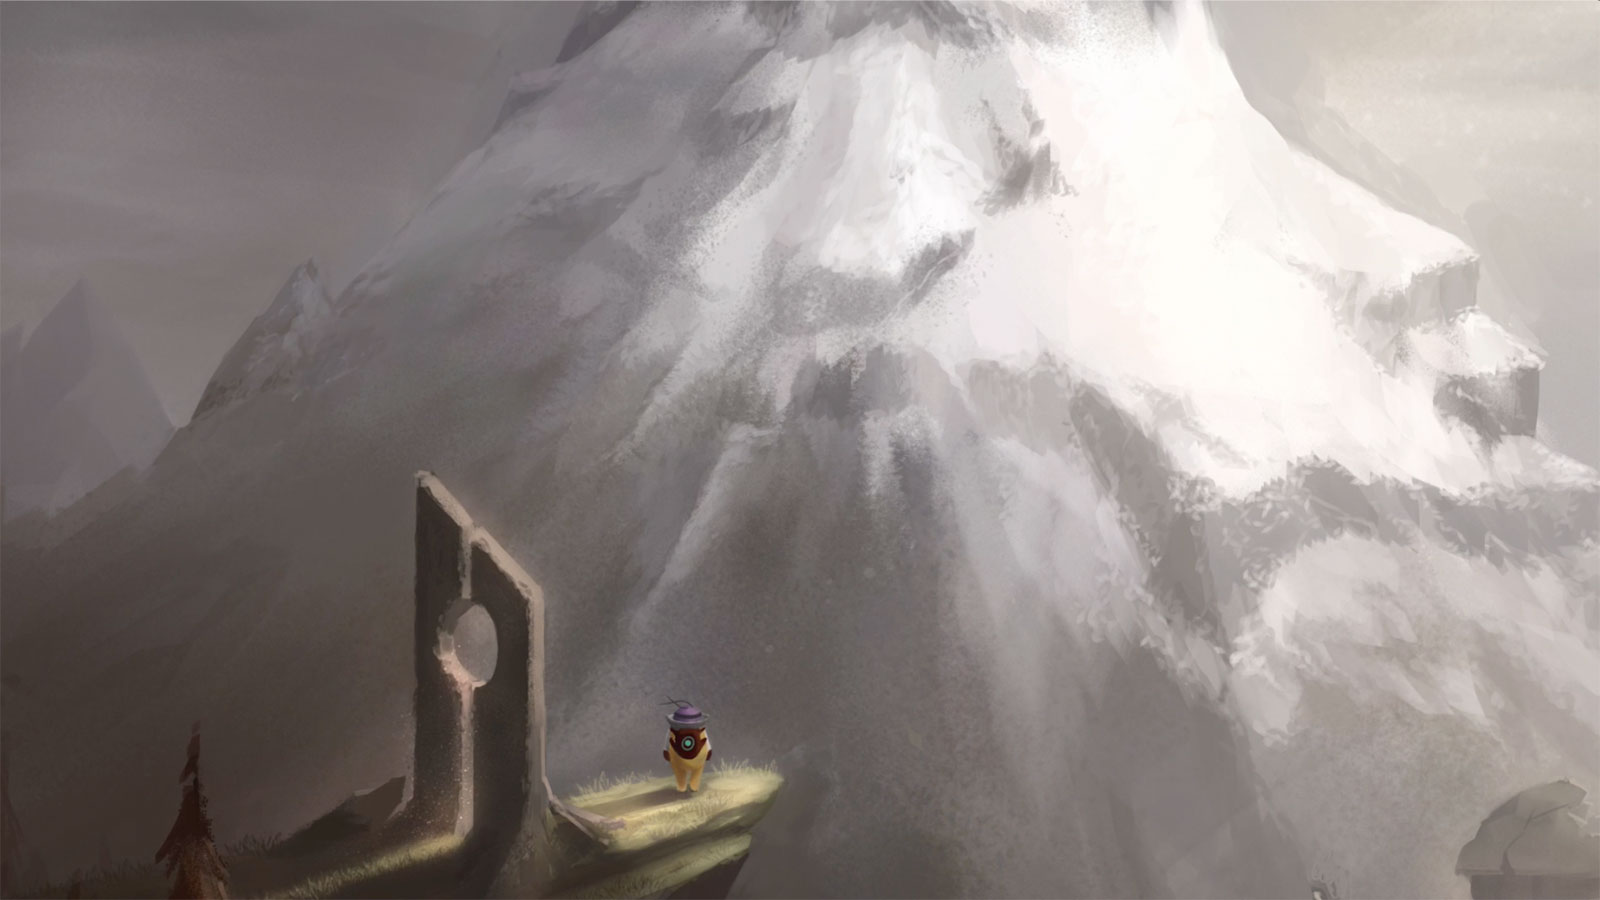 Pilot character stands on a precipice before a large mountain.